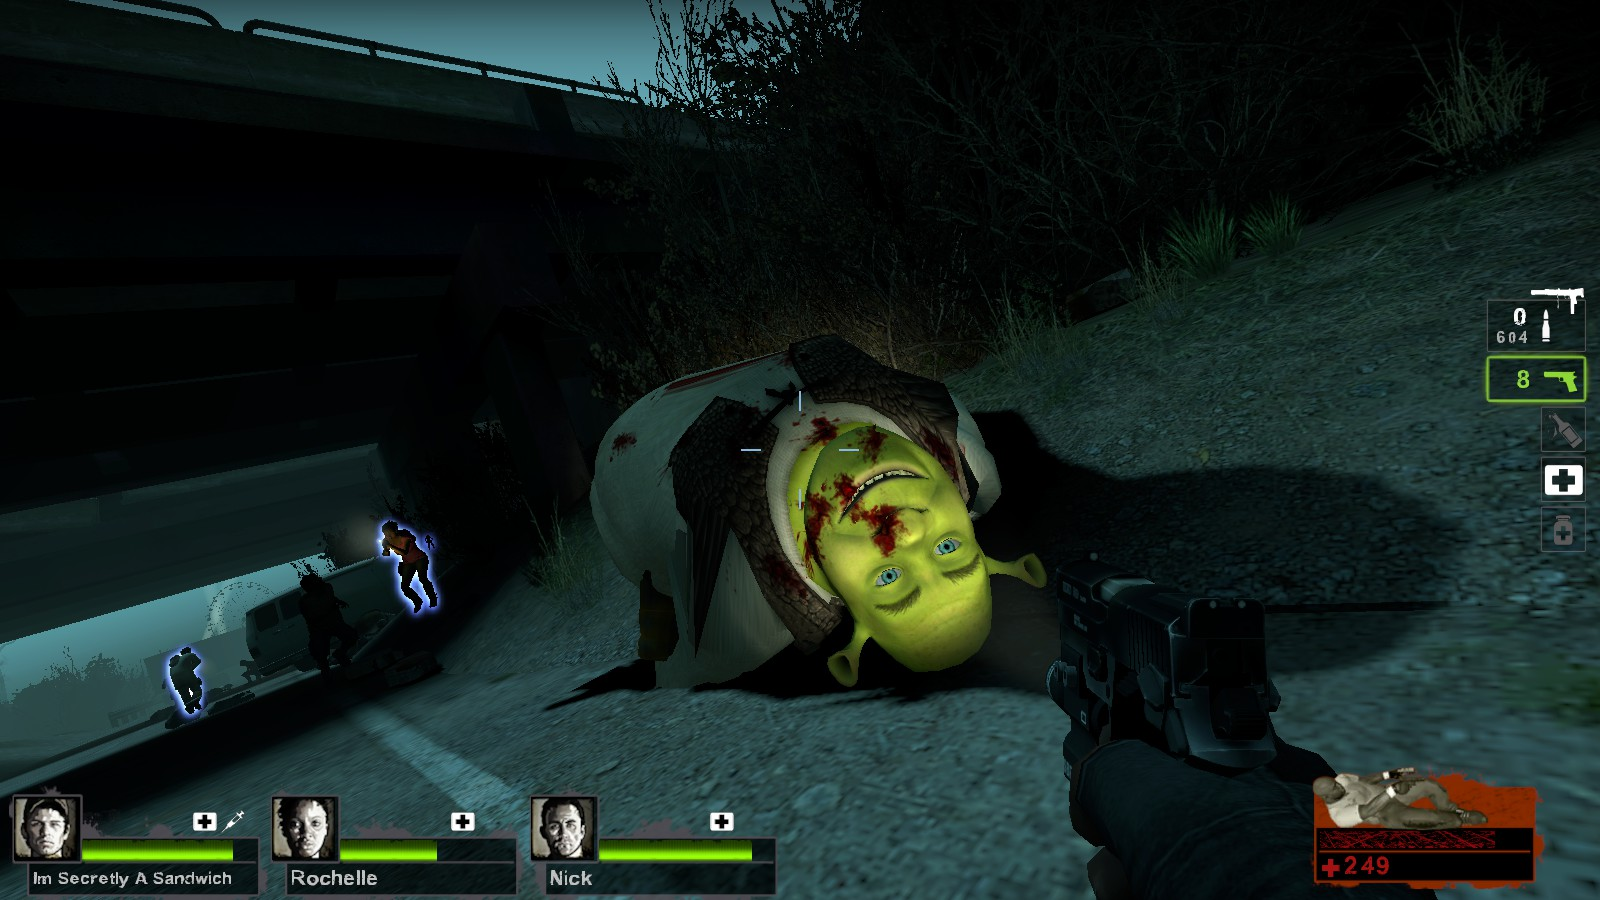 how to play left 4 dead 2 online with friends